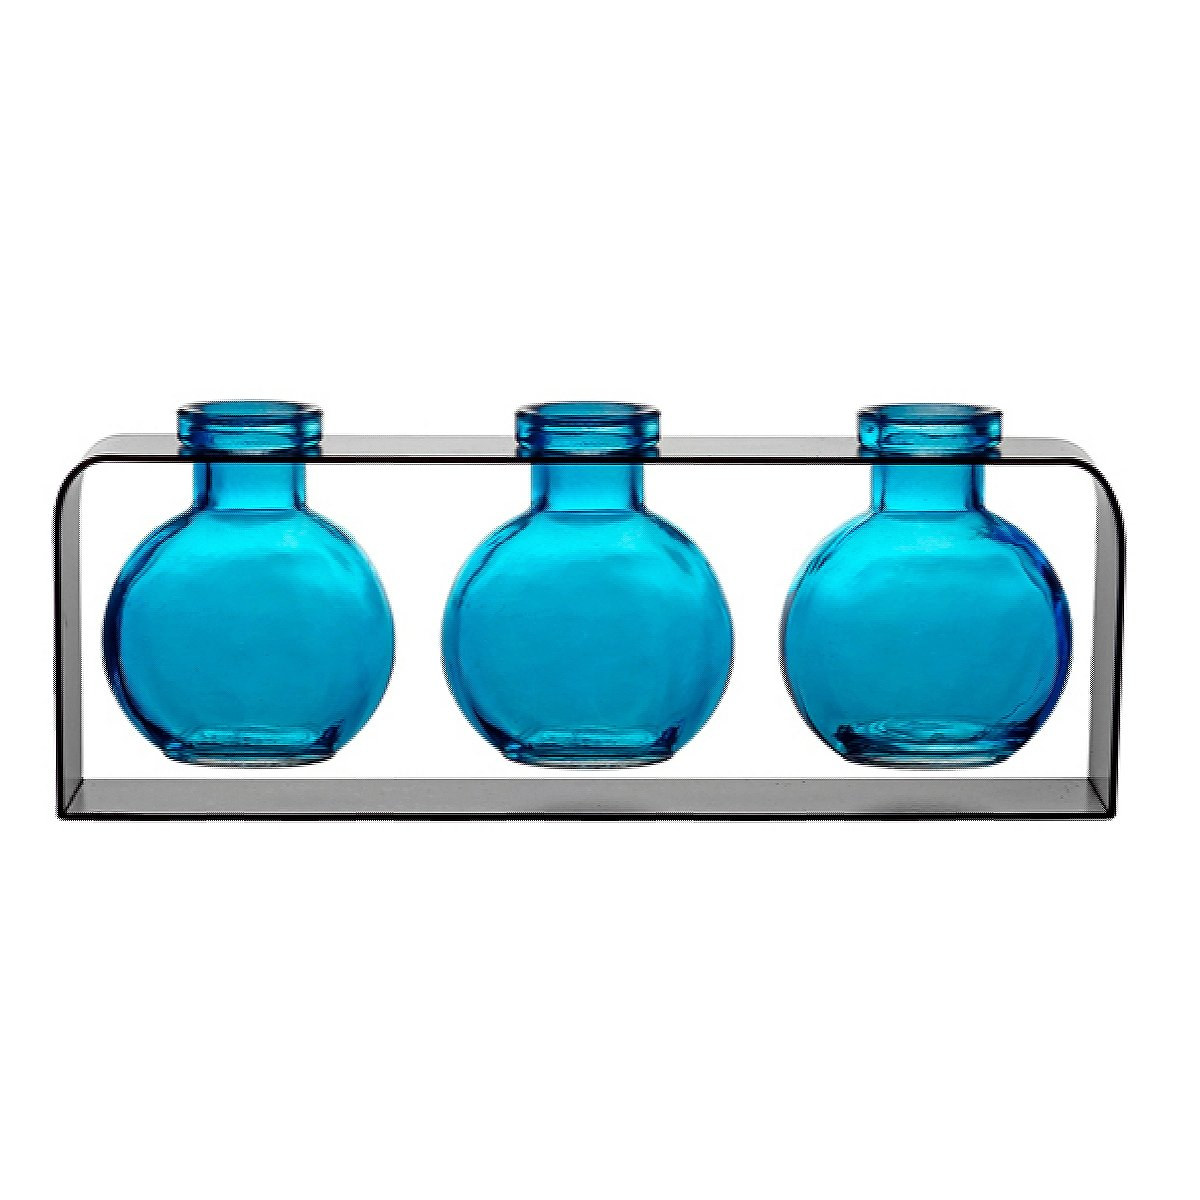 Amazon small glass vases colored bottles unique vase amazon small glass vases colored bottles unique vase g171f aqua 3 ball bottles with stand modern vases decorative accents glass centerpieces reviewsmspy